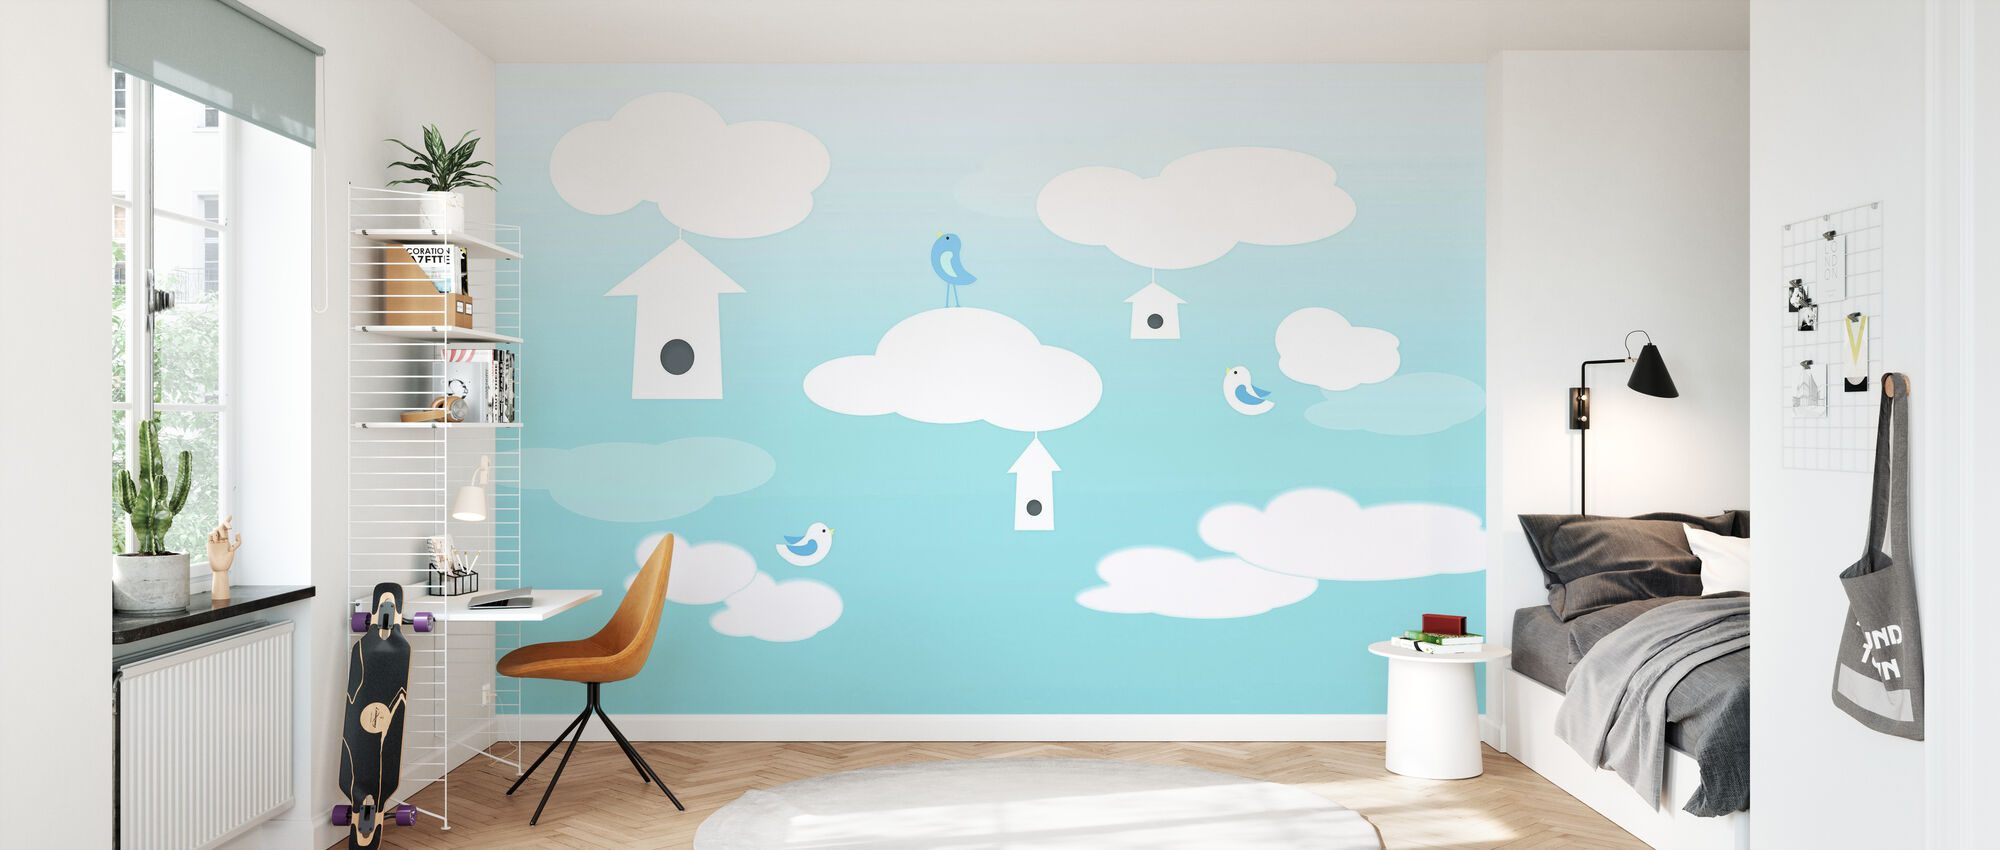 Birds up High - Wallpaper - Kids Room